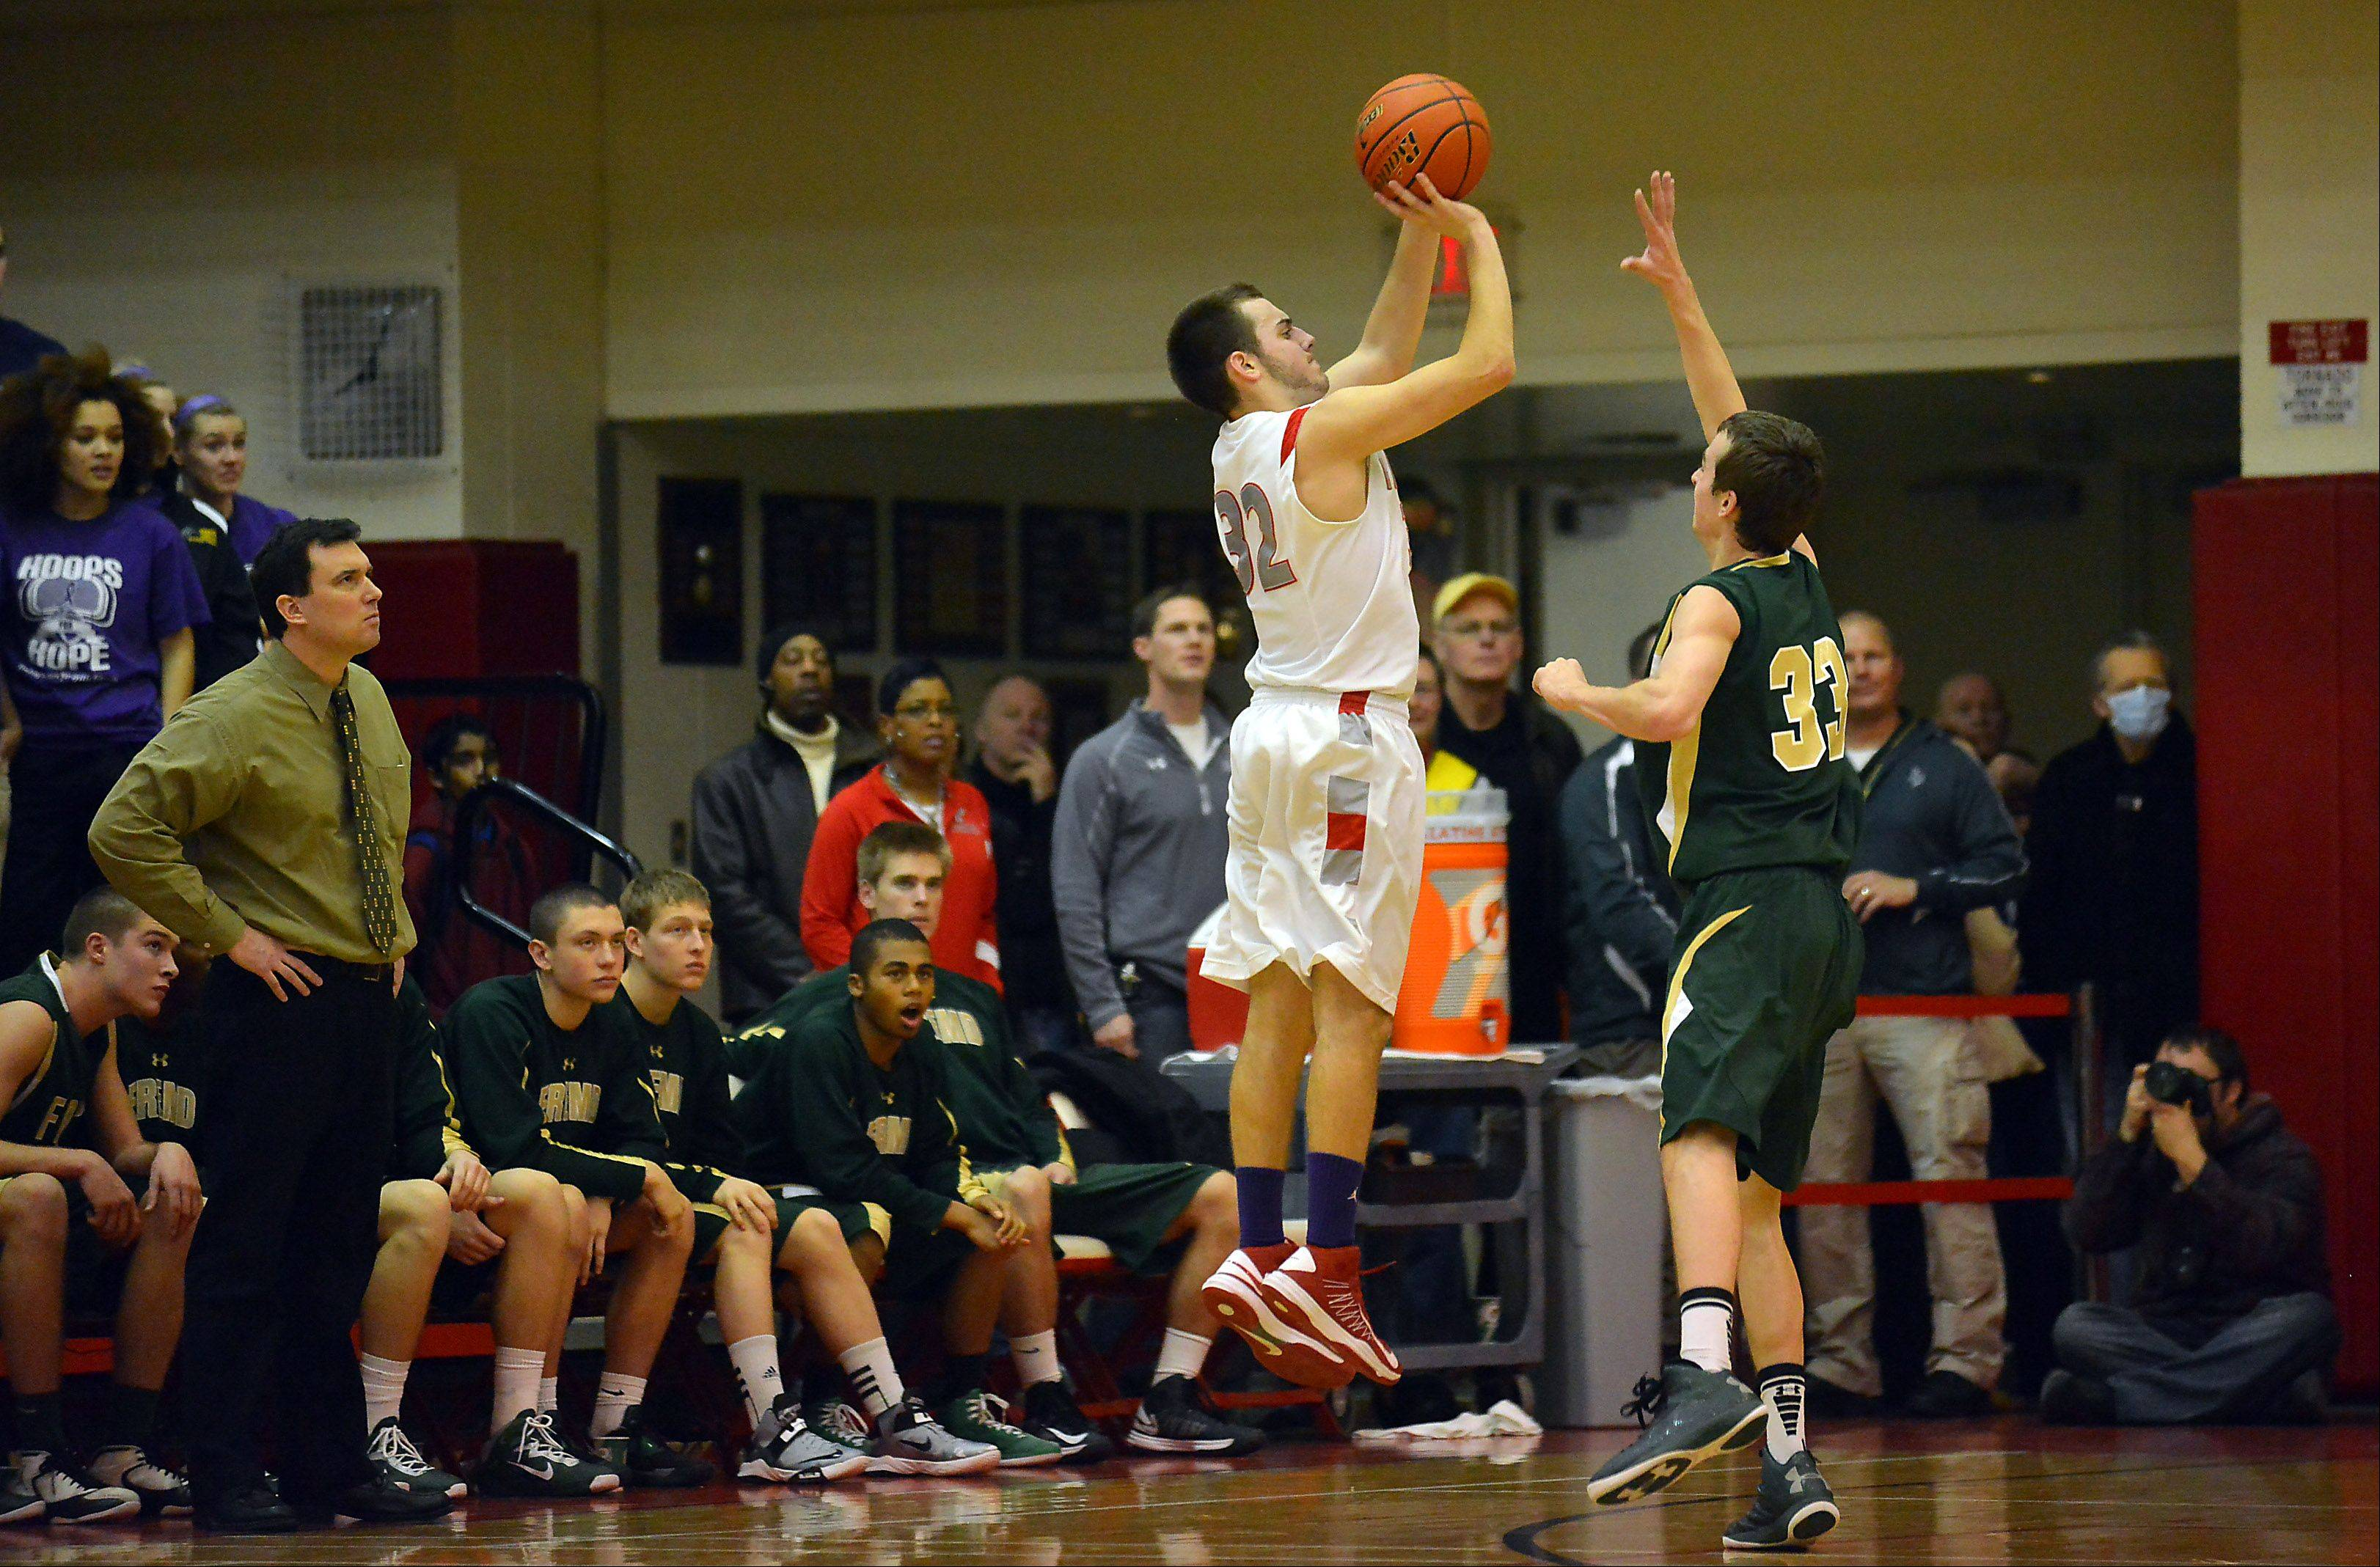 Mark Welsh/mwelsh@dailyherald.com Palatine's Greg Grana shoots over Fremd's Sean Benka as he attempts to block the shot in the boys varsity matchup at Palatine High School on Friday.